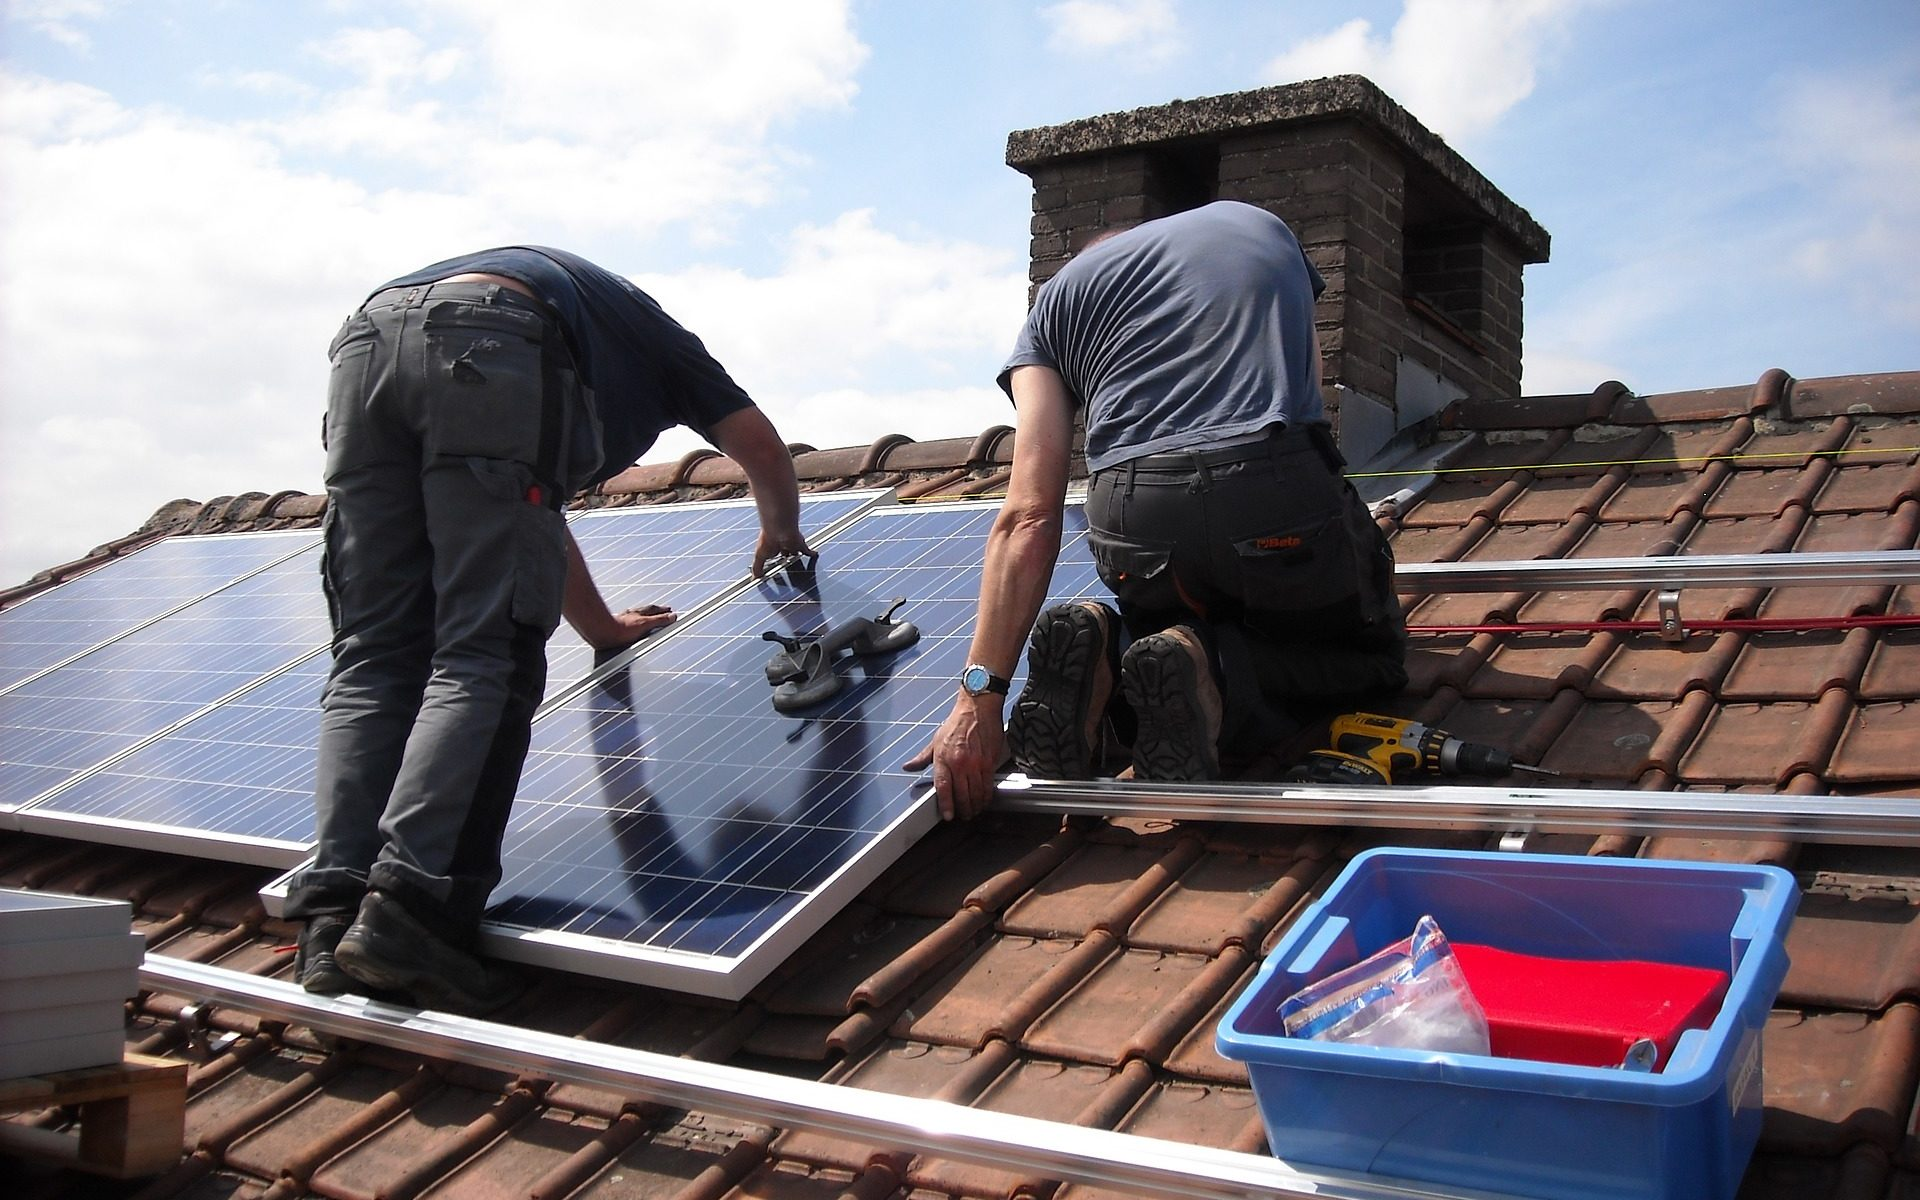 CLEANING SOLAR PANELS: Who, What, When, Where, Why, How?